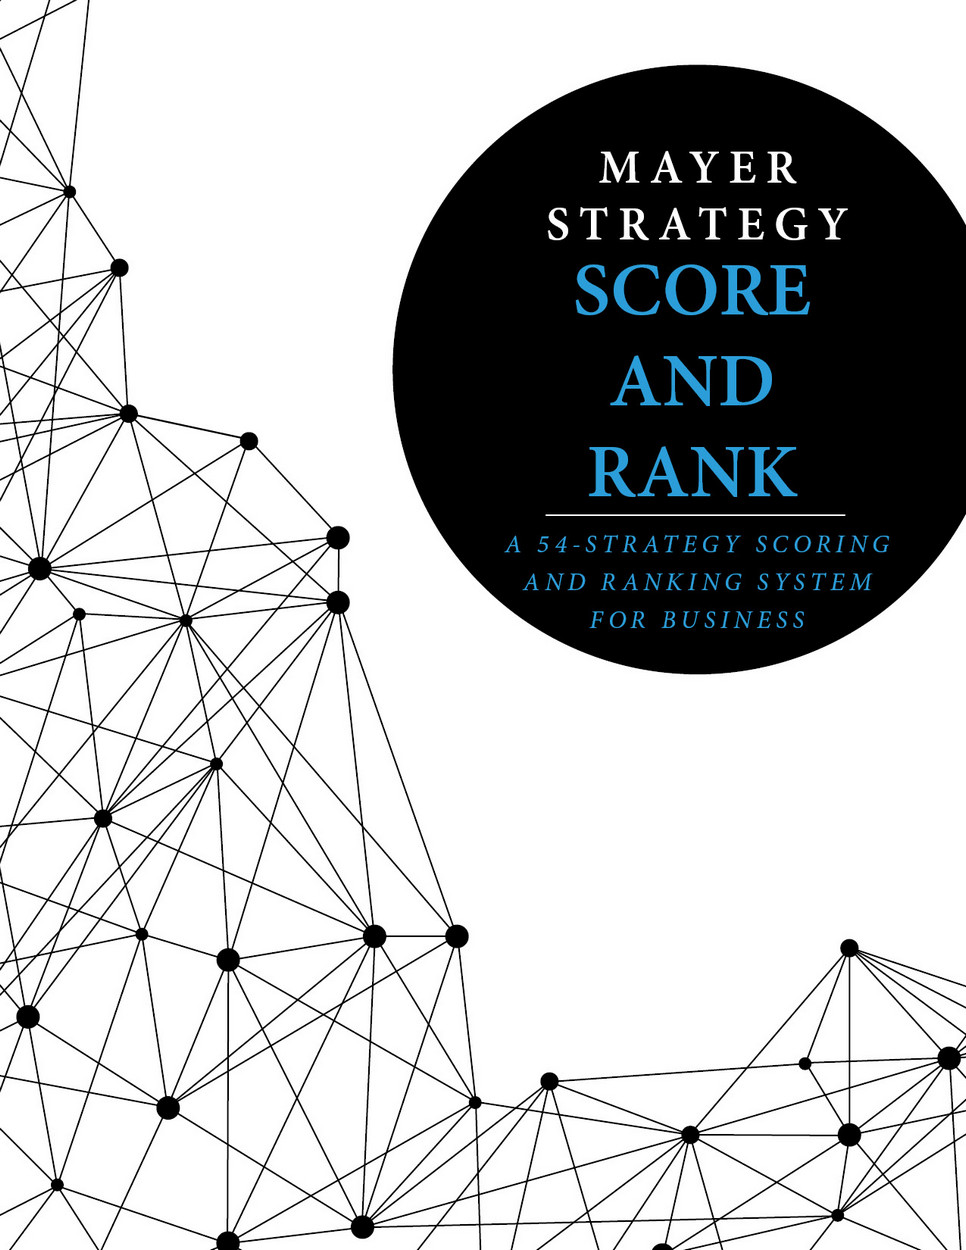 Mayer Strategy Score and Rank